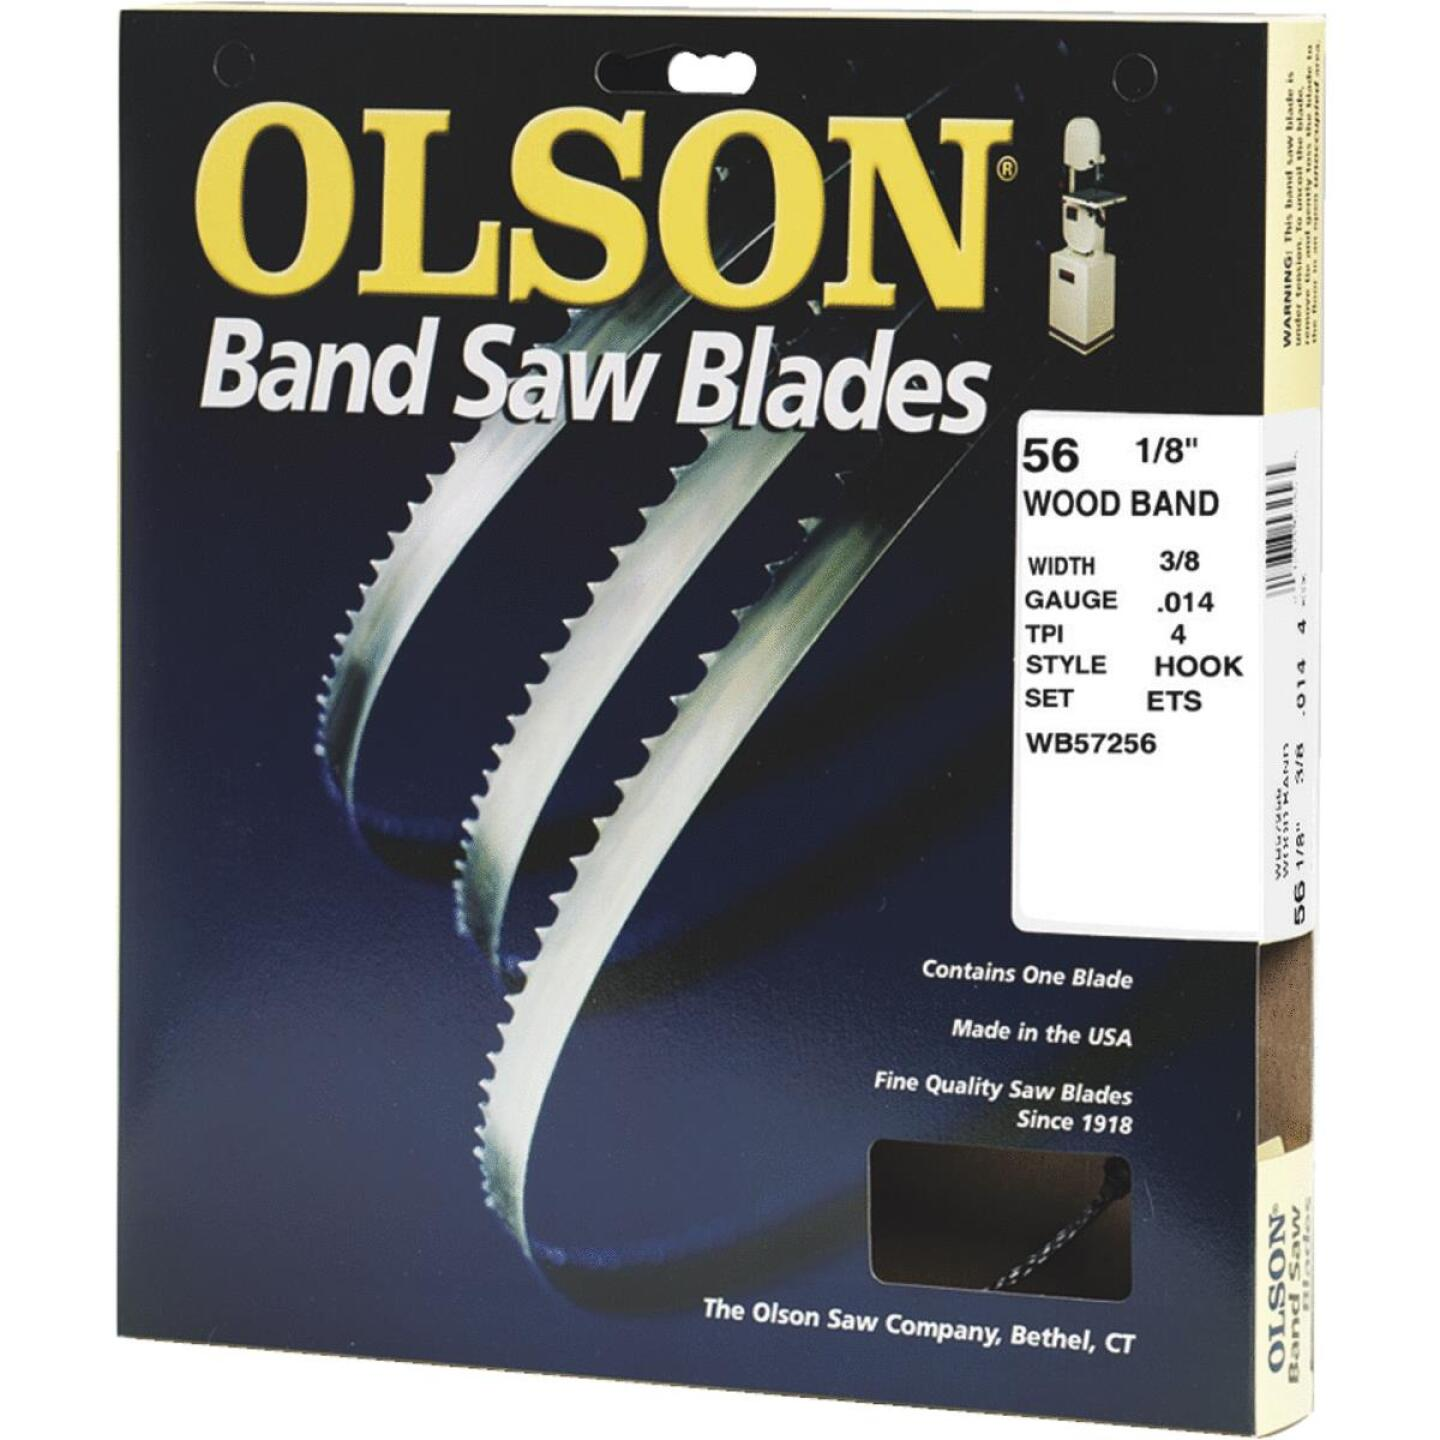 Olson 56-1/8 In. x 3/8 In. 4 TPI Hook Wood Cutting Band Saw Blade Image 1